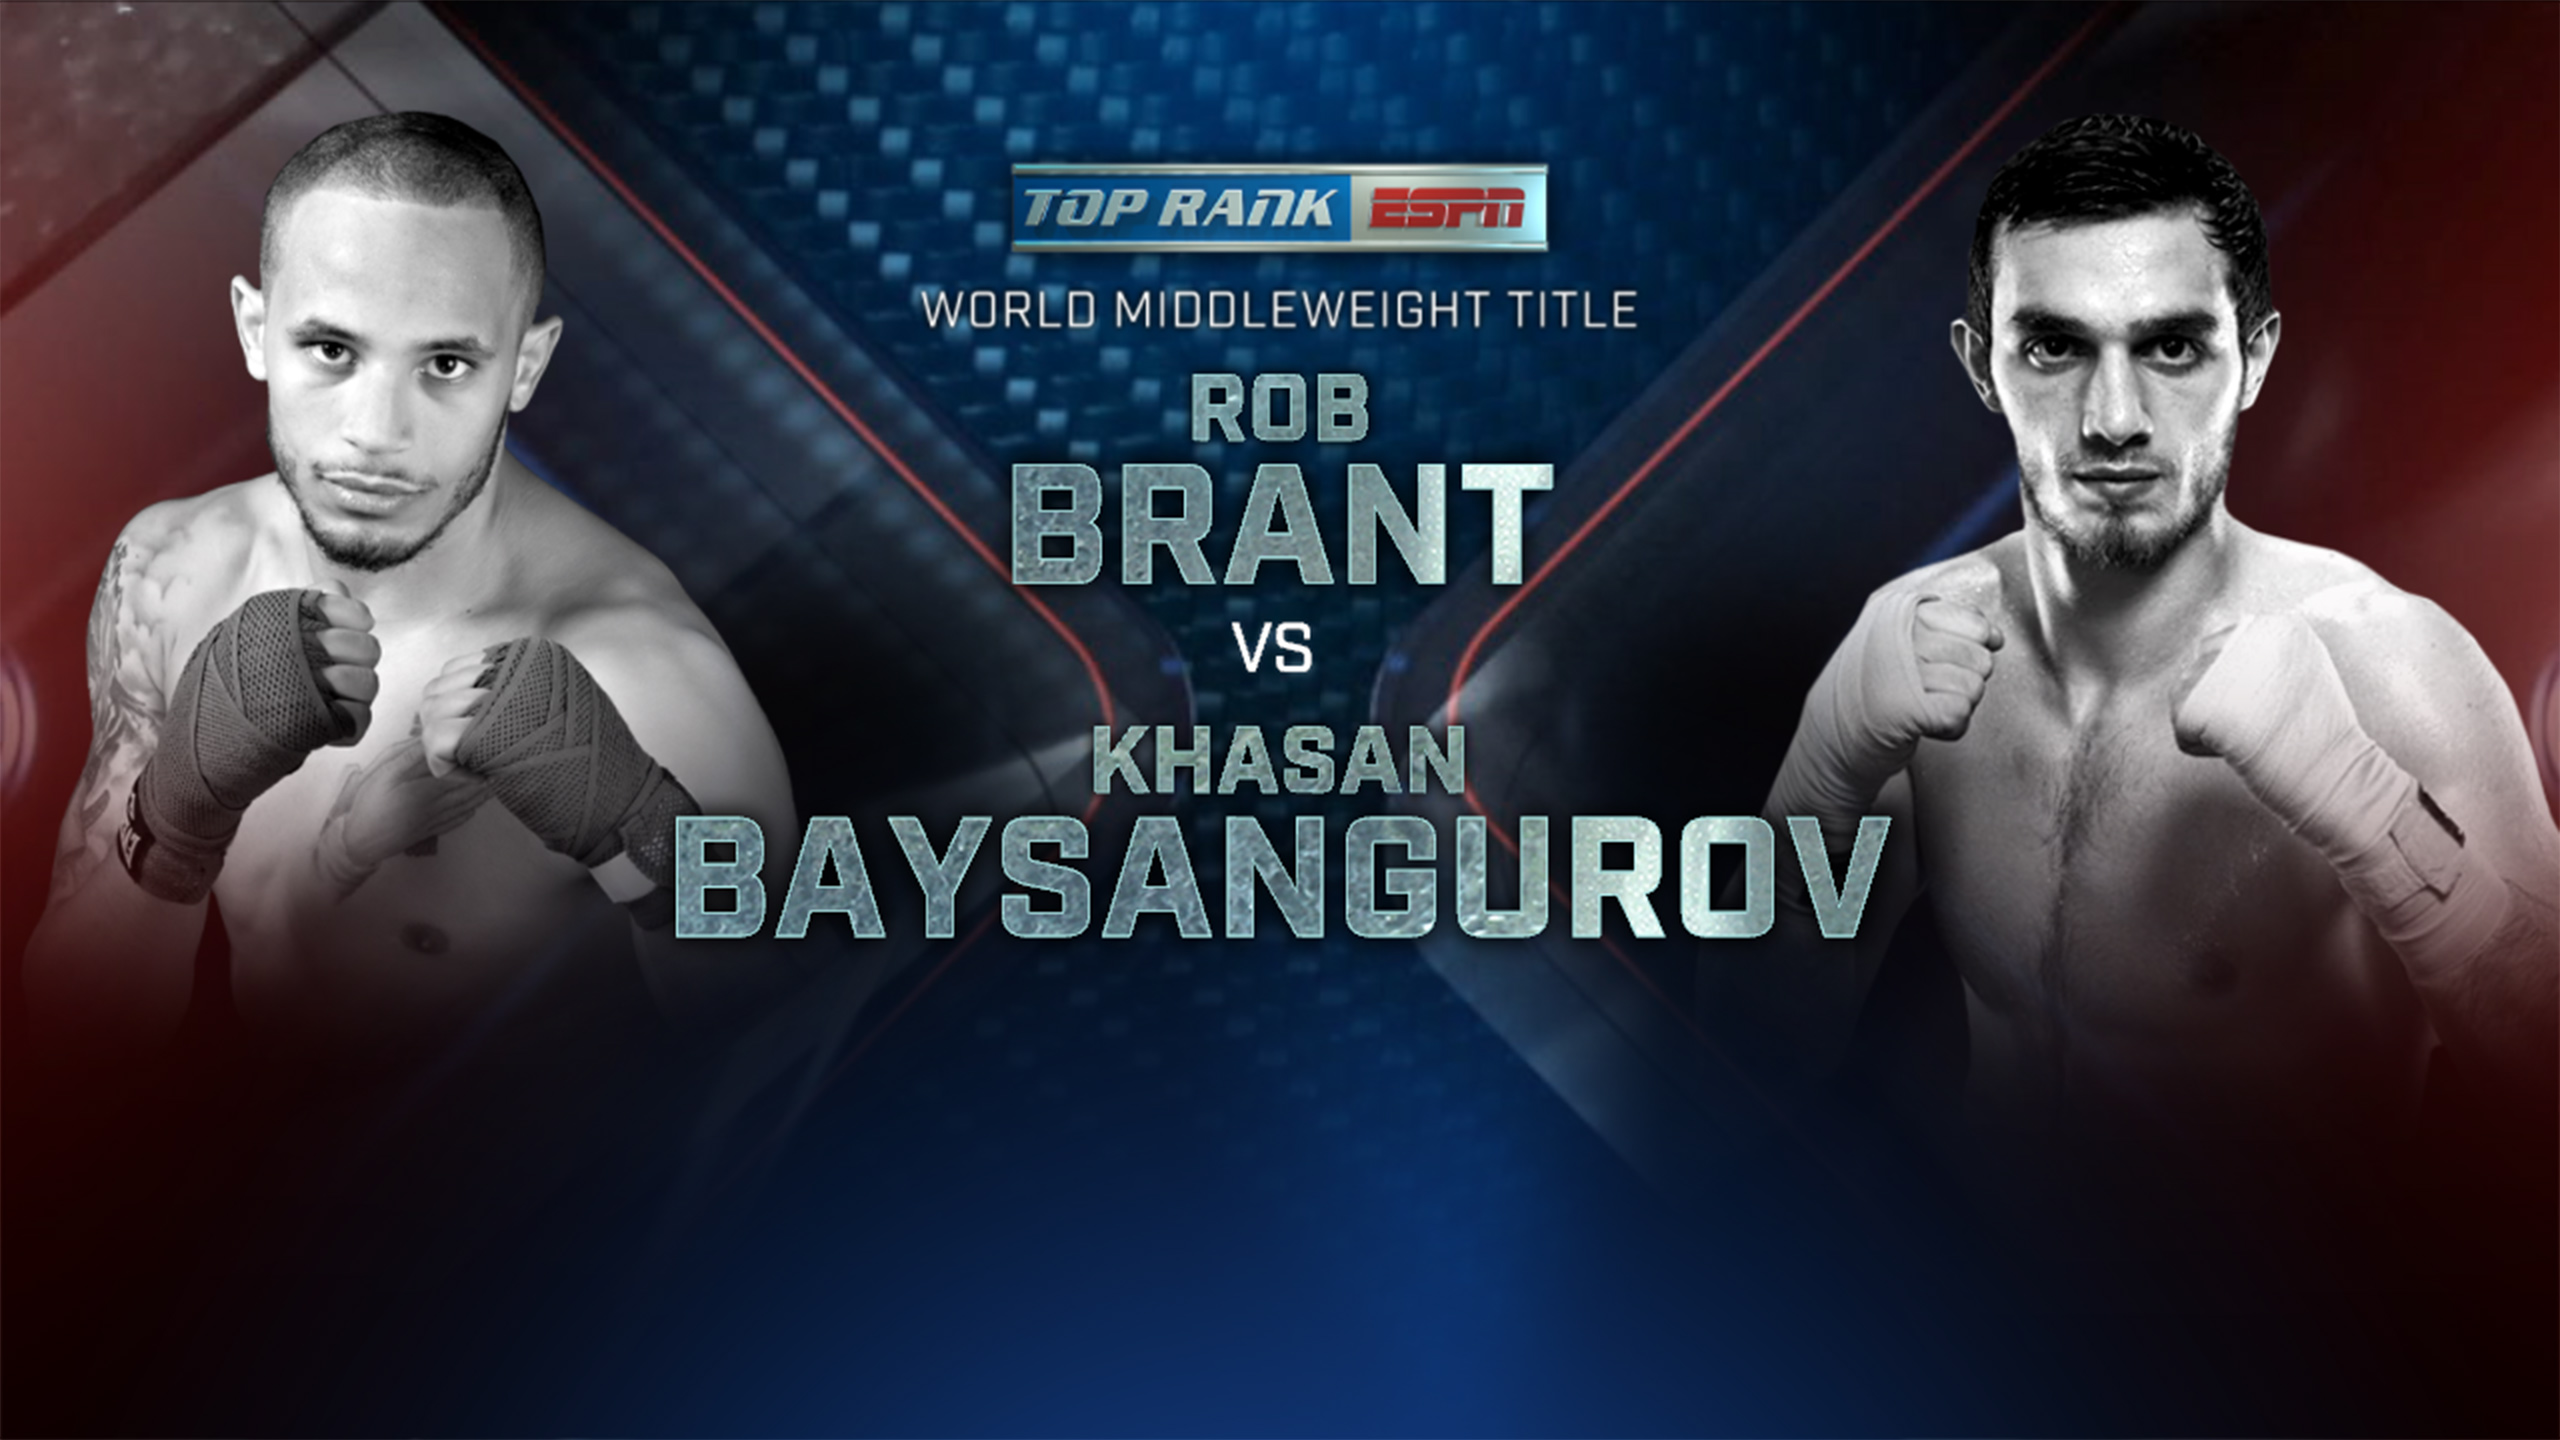 Rob Brant vs. Khasan Baysangurov (re-air)